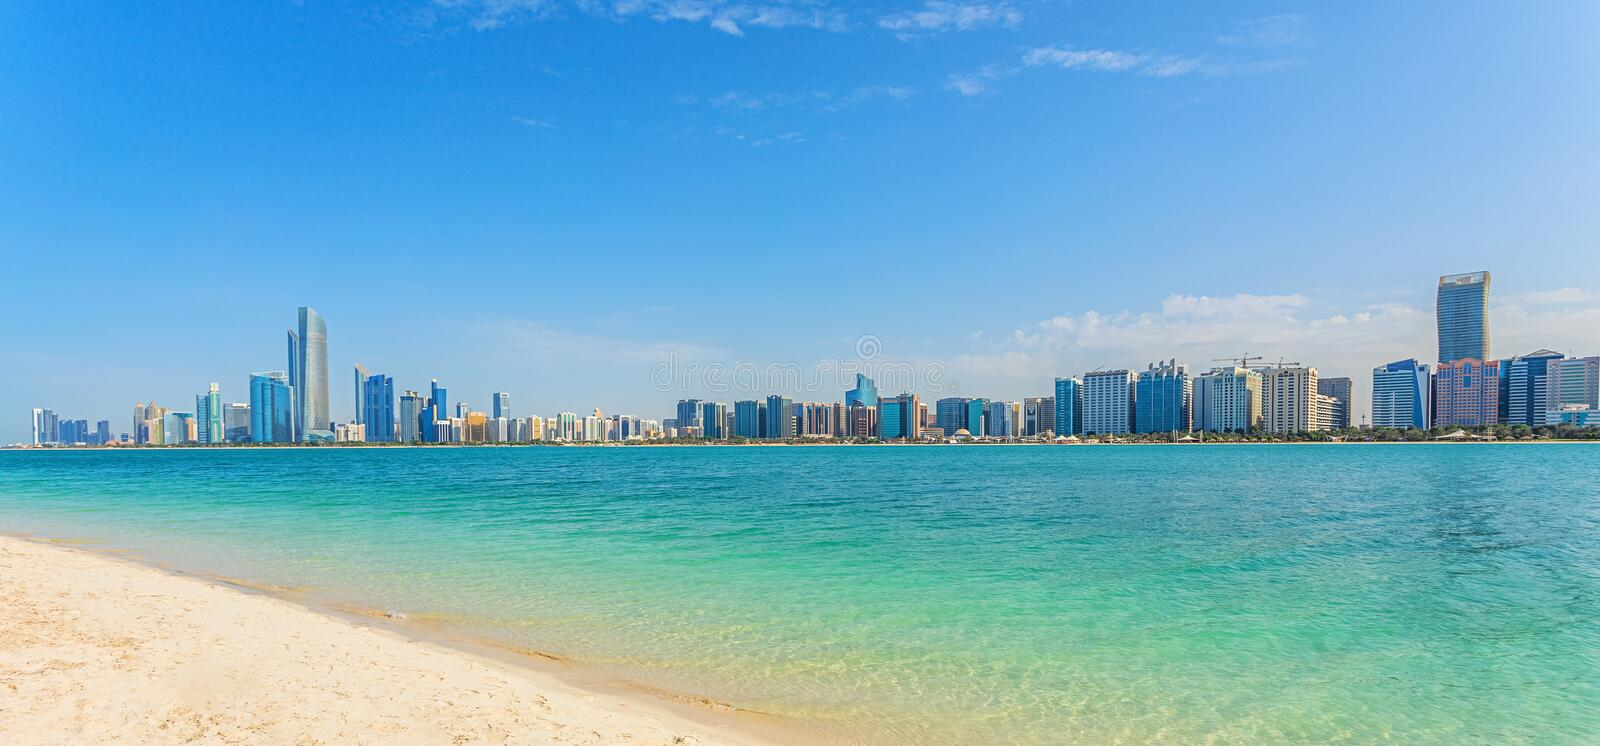 Abu Dhabi Skyline with water, skyscraper and beach, panoramic view stock photos